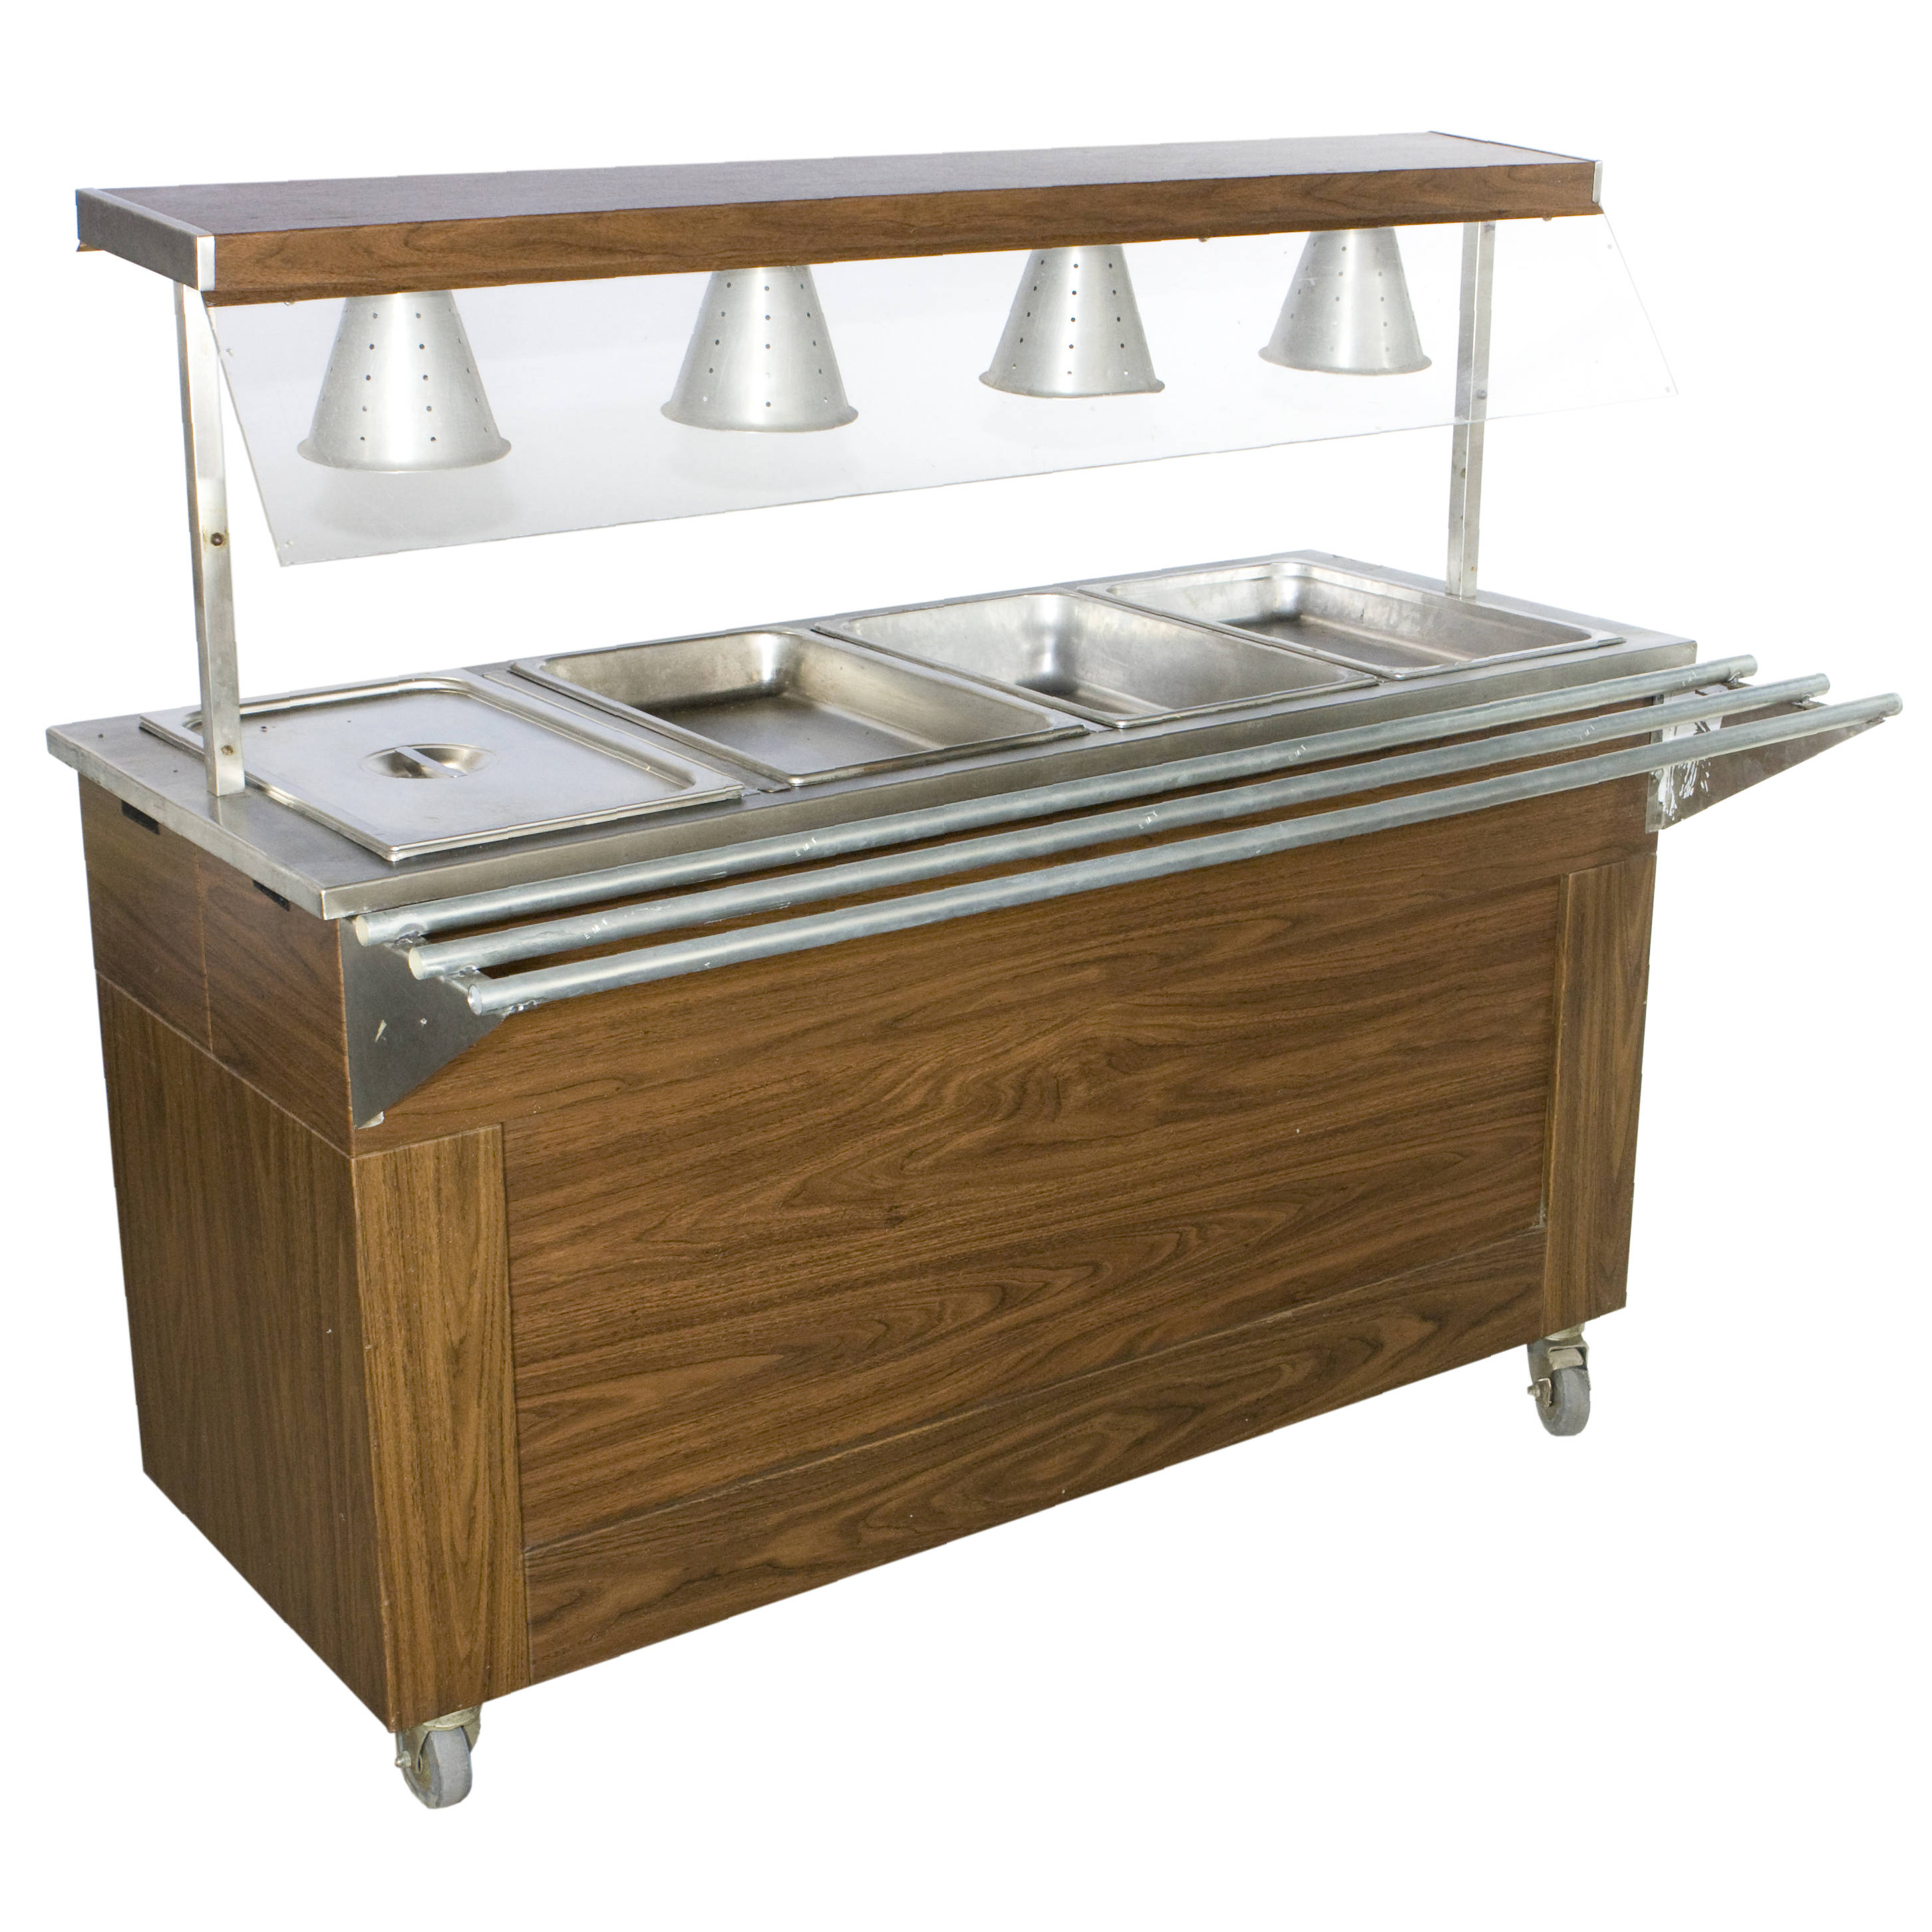 CAFETERIA STEAM TABLE W TRAY RAIL AND HEAT LAMPS Air Designs - Cafeteria steam table